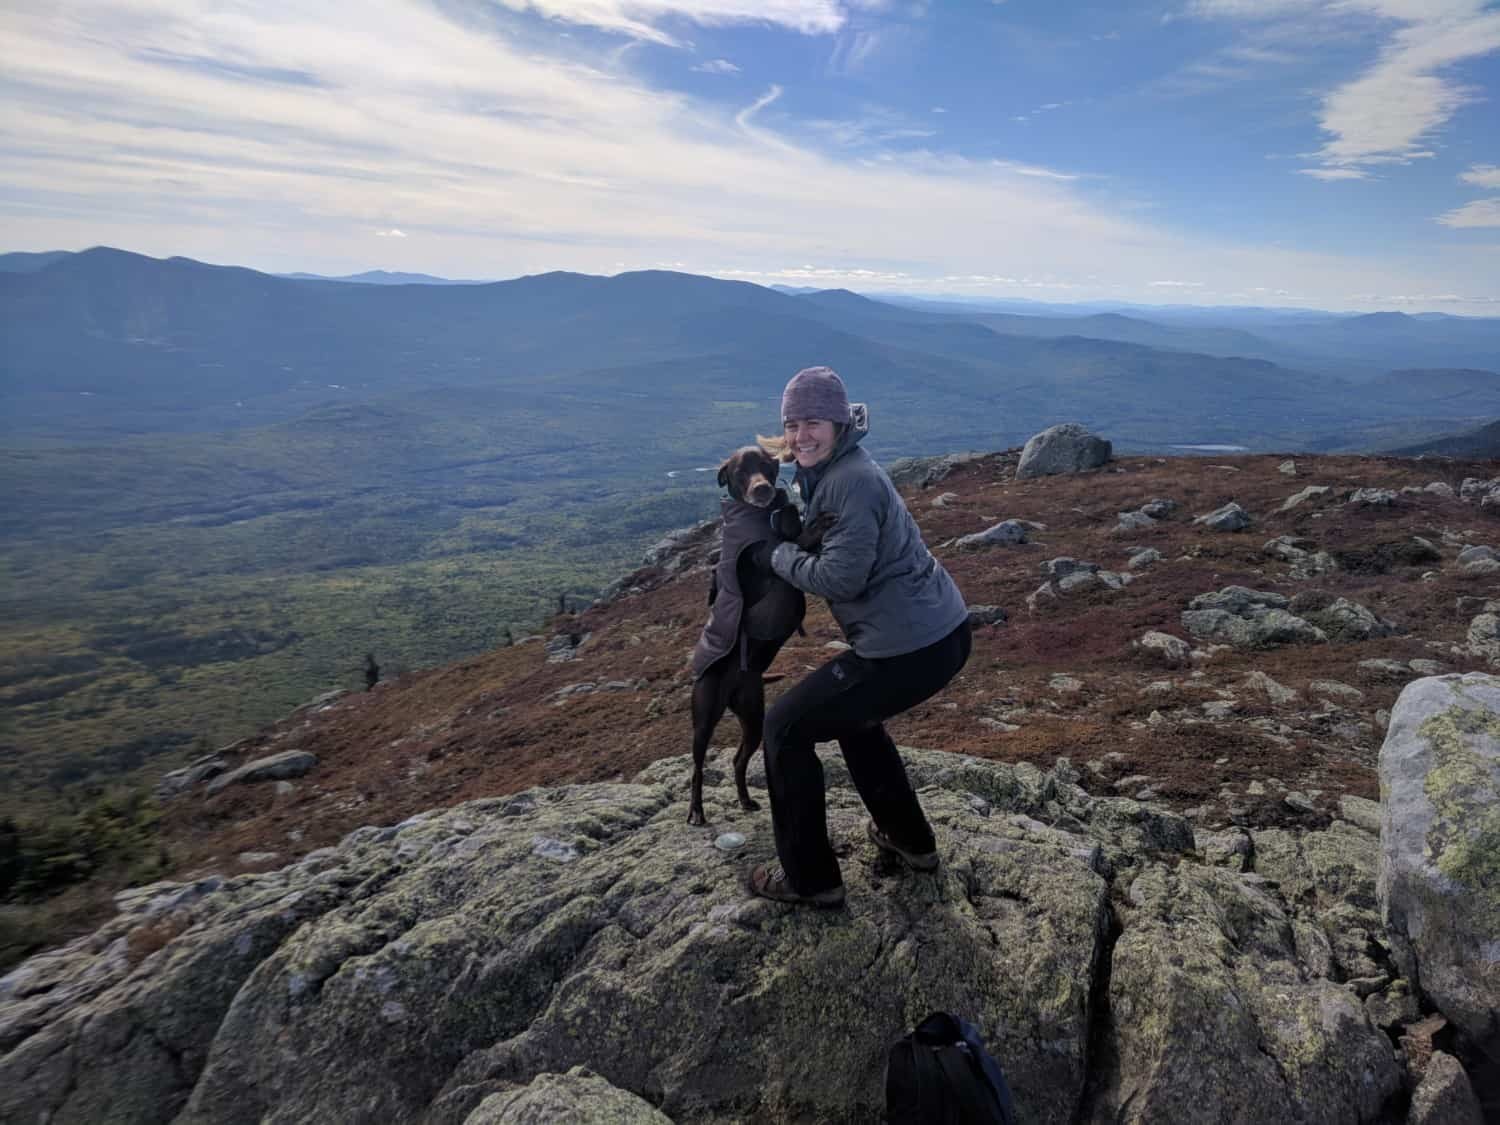 Dog and woman hiking the pet friendly Appalachian Trail in Maine